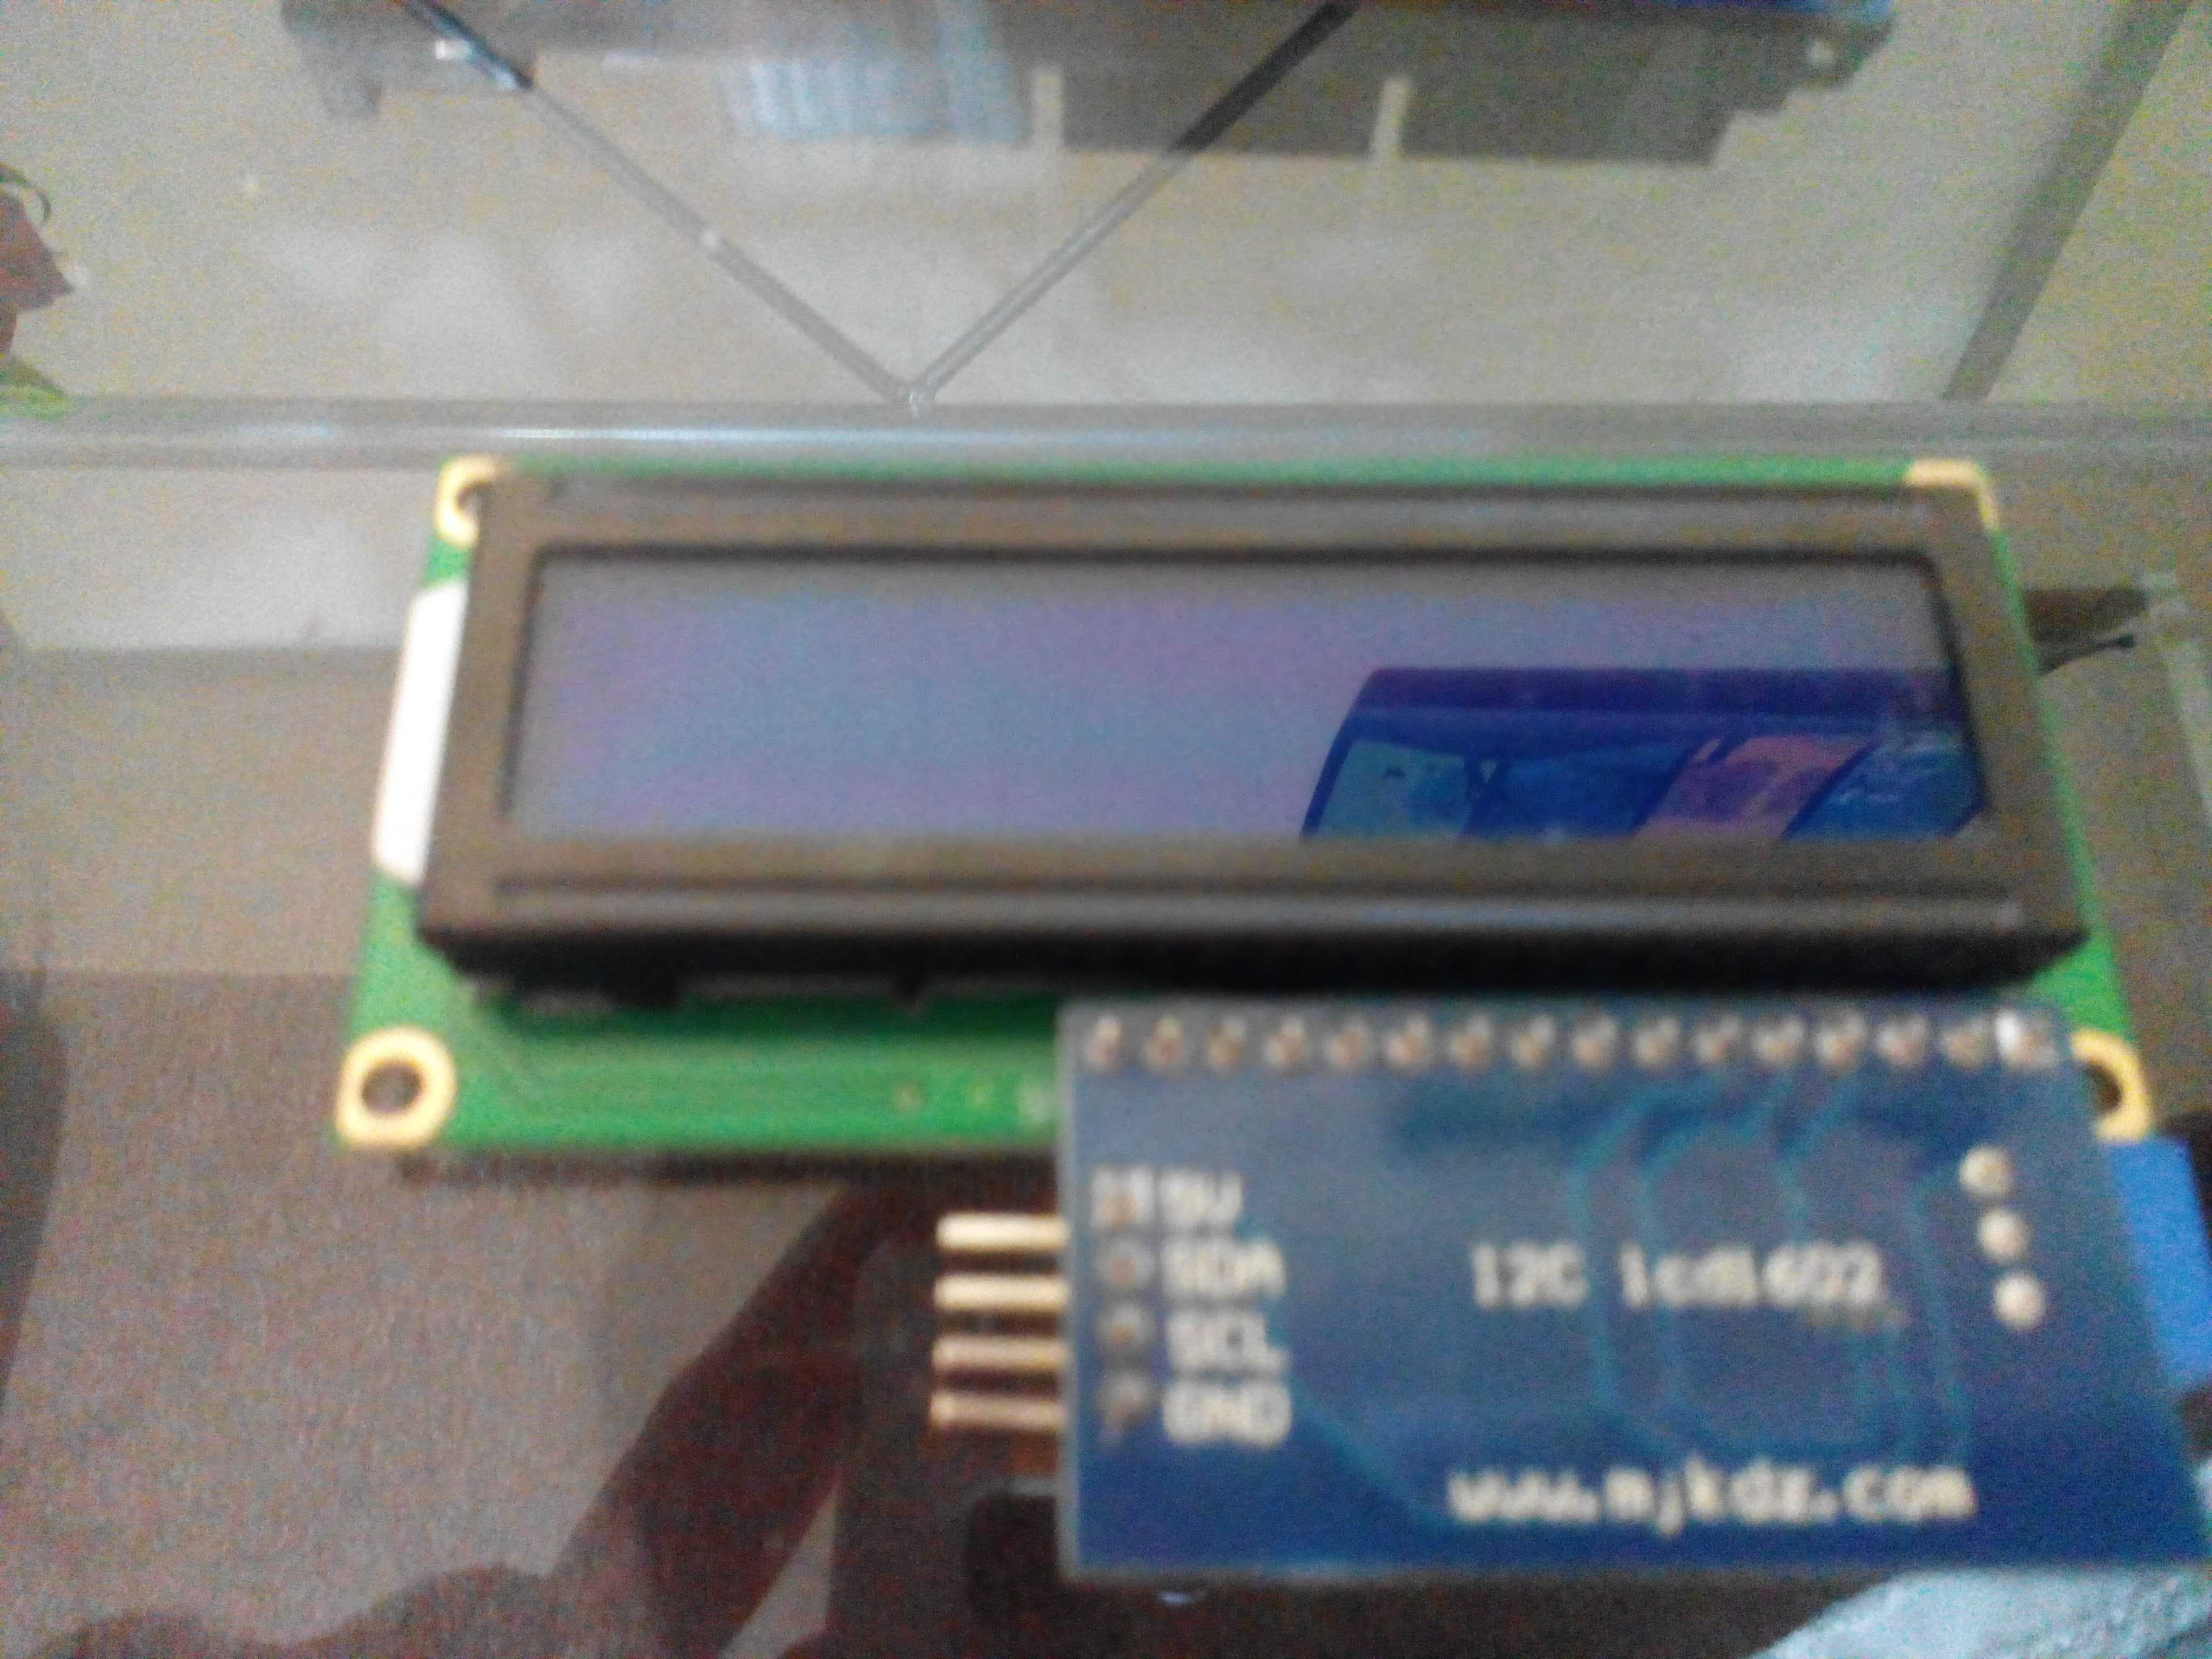 How Can I Use A LCD Display With A I2C Adapter